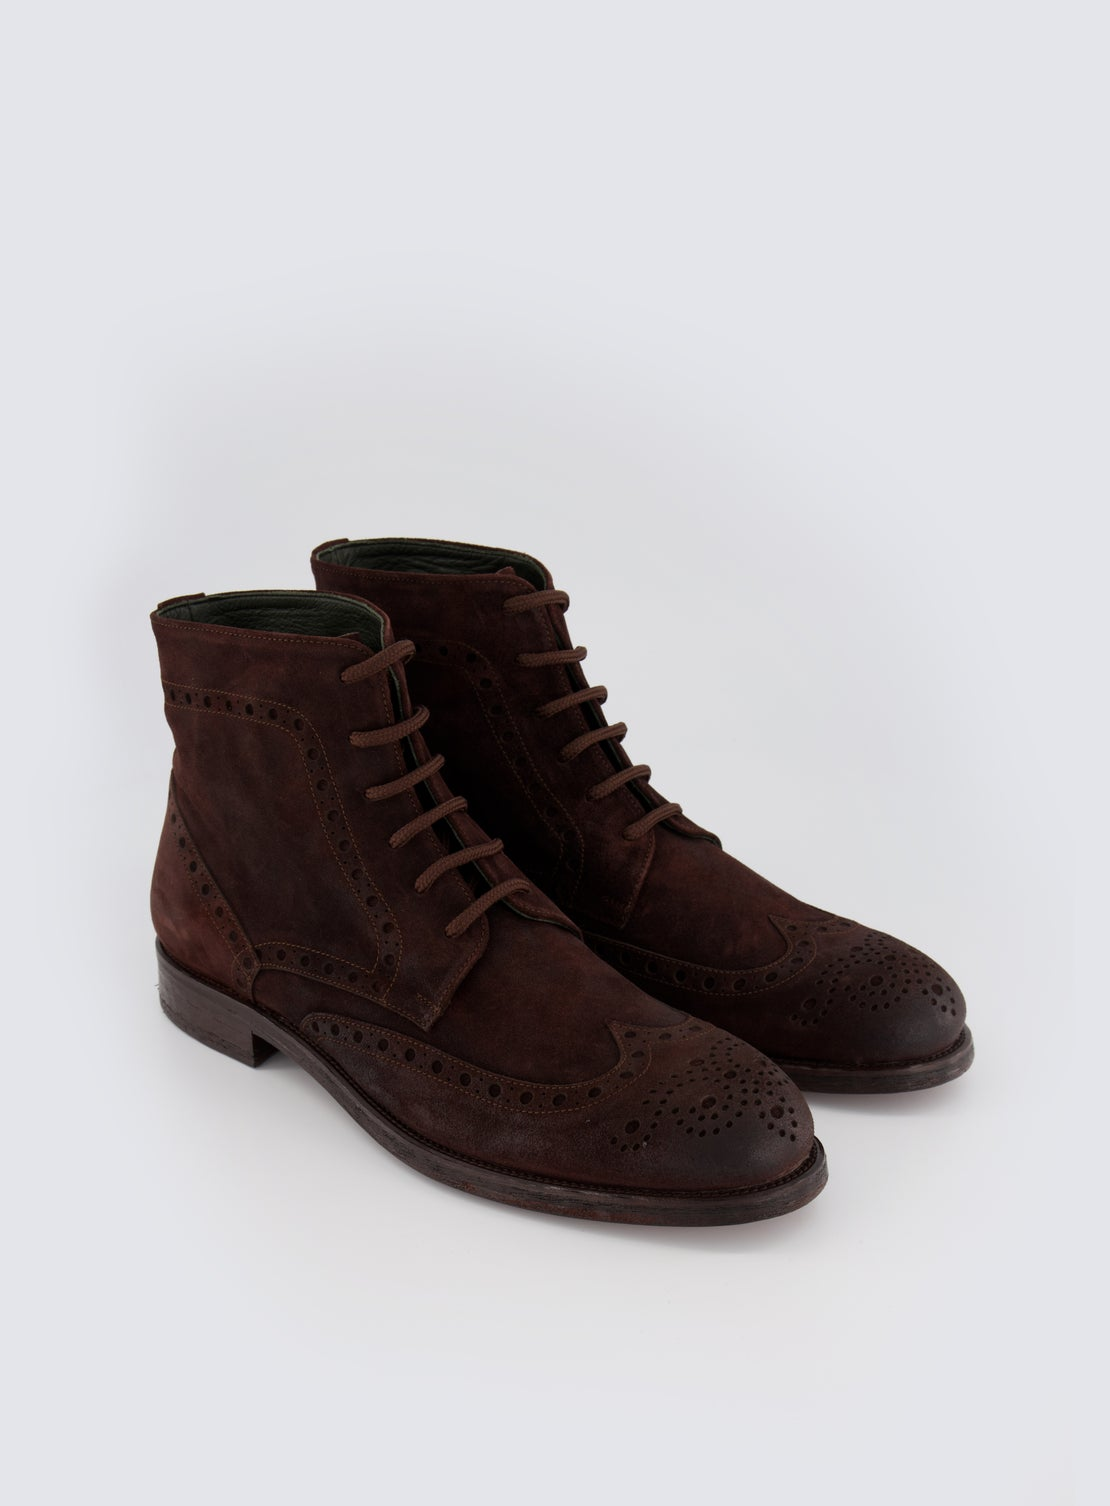 Johnson Brown Suede Lace Up Boot